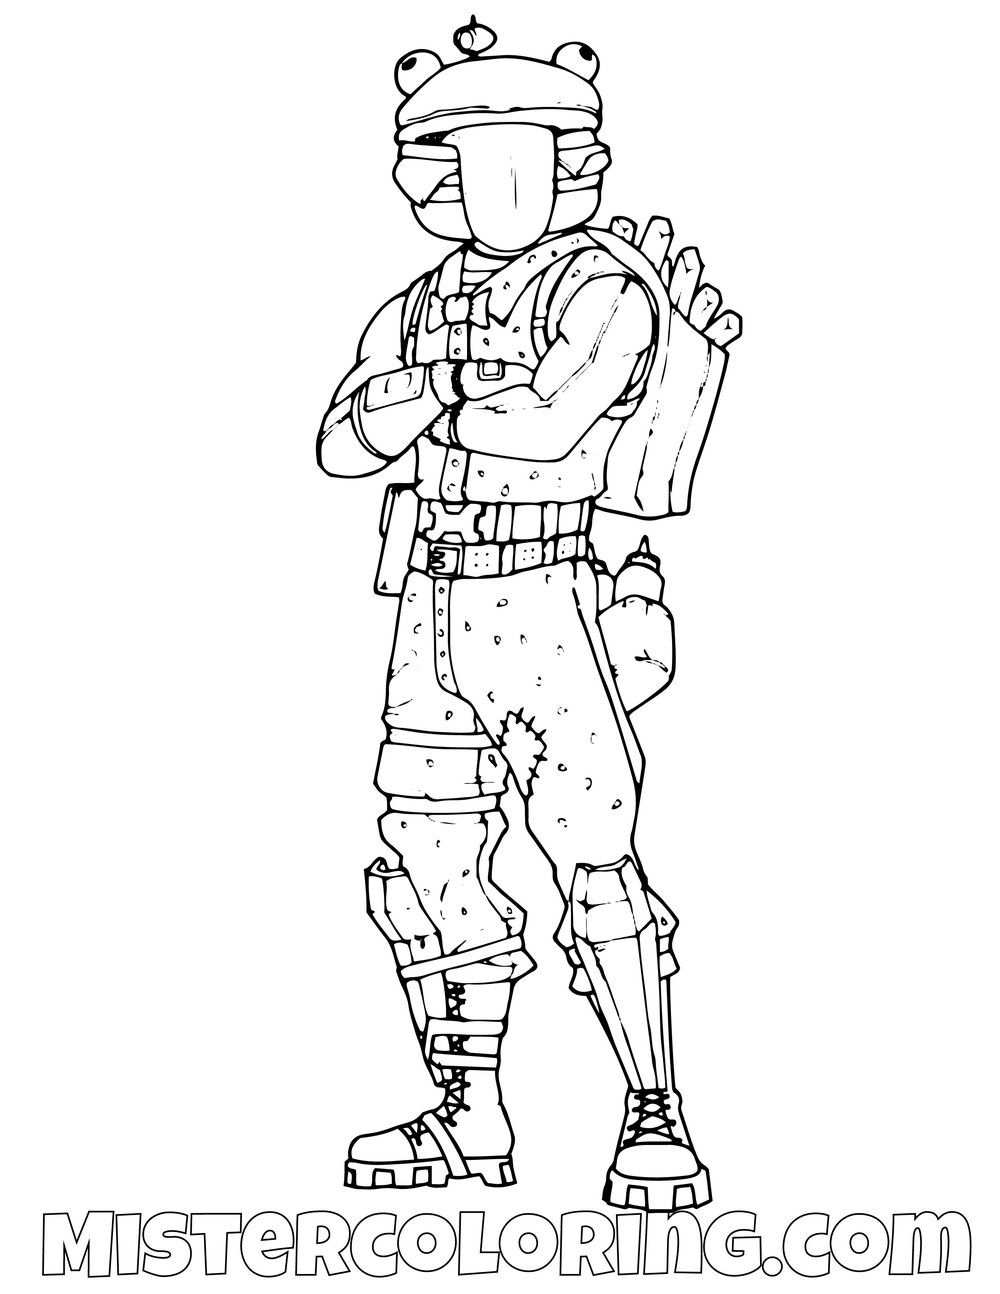 Free Durr Burger Fortnite Coloring Page For Kids Coloring Pages